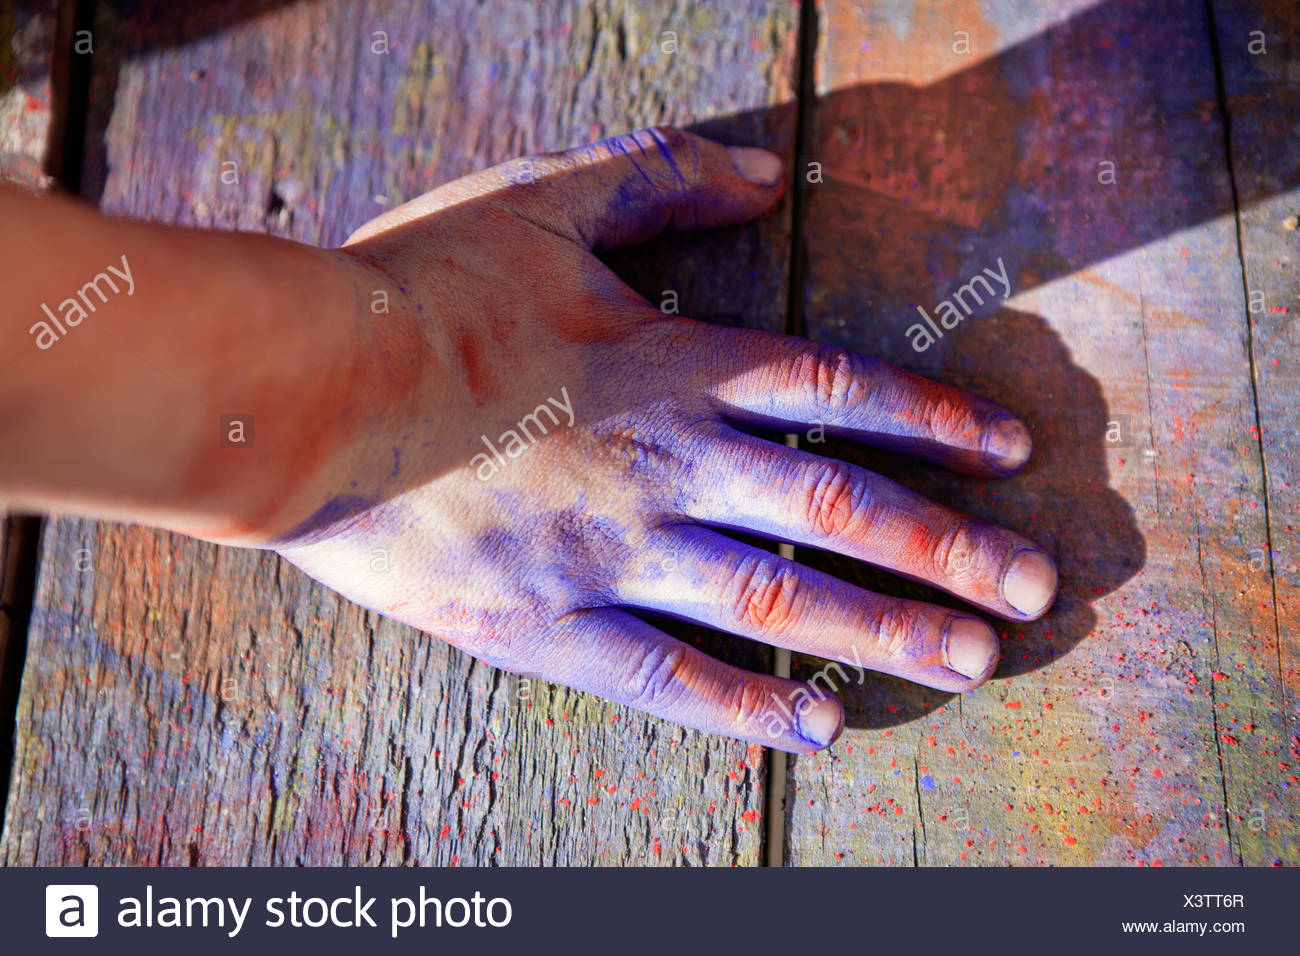 Germany, North Rhine Westphalia, Cologne, Human hand covered with colour, close up - Stock Image